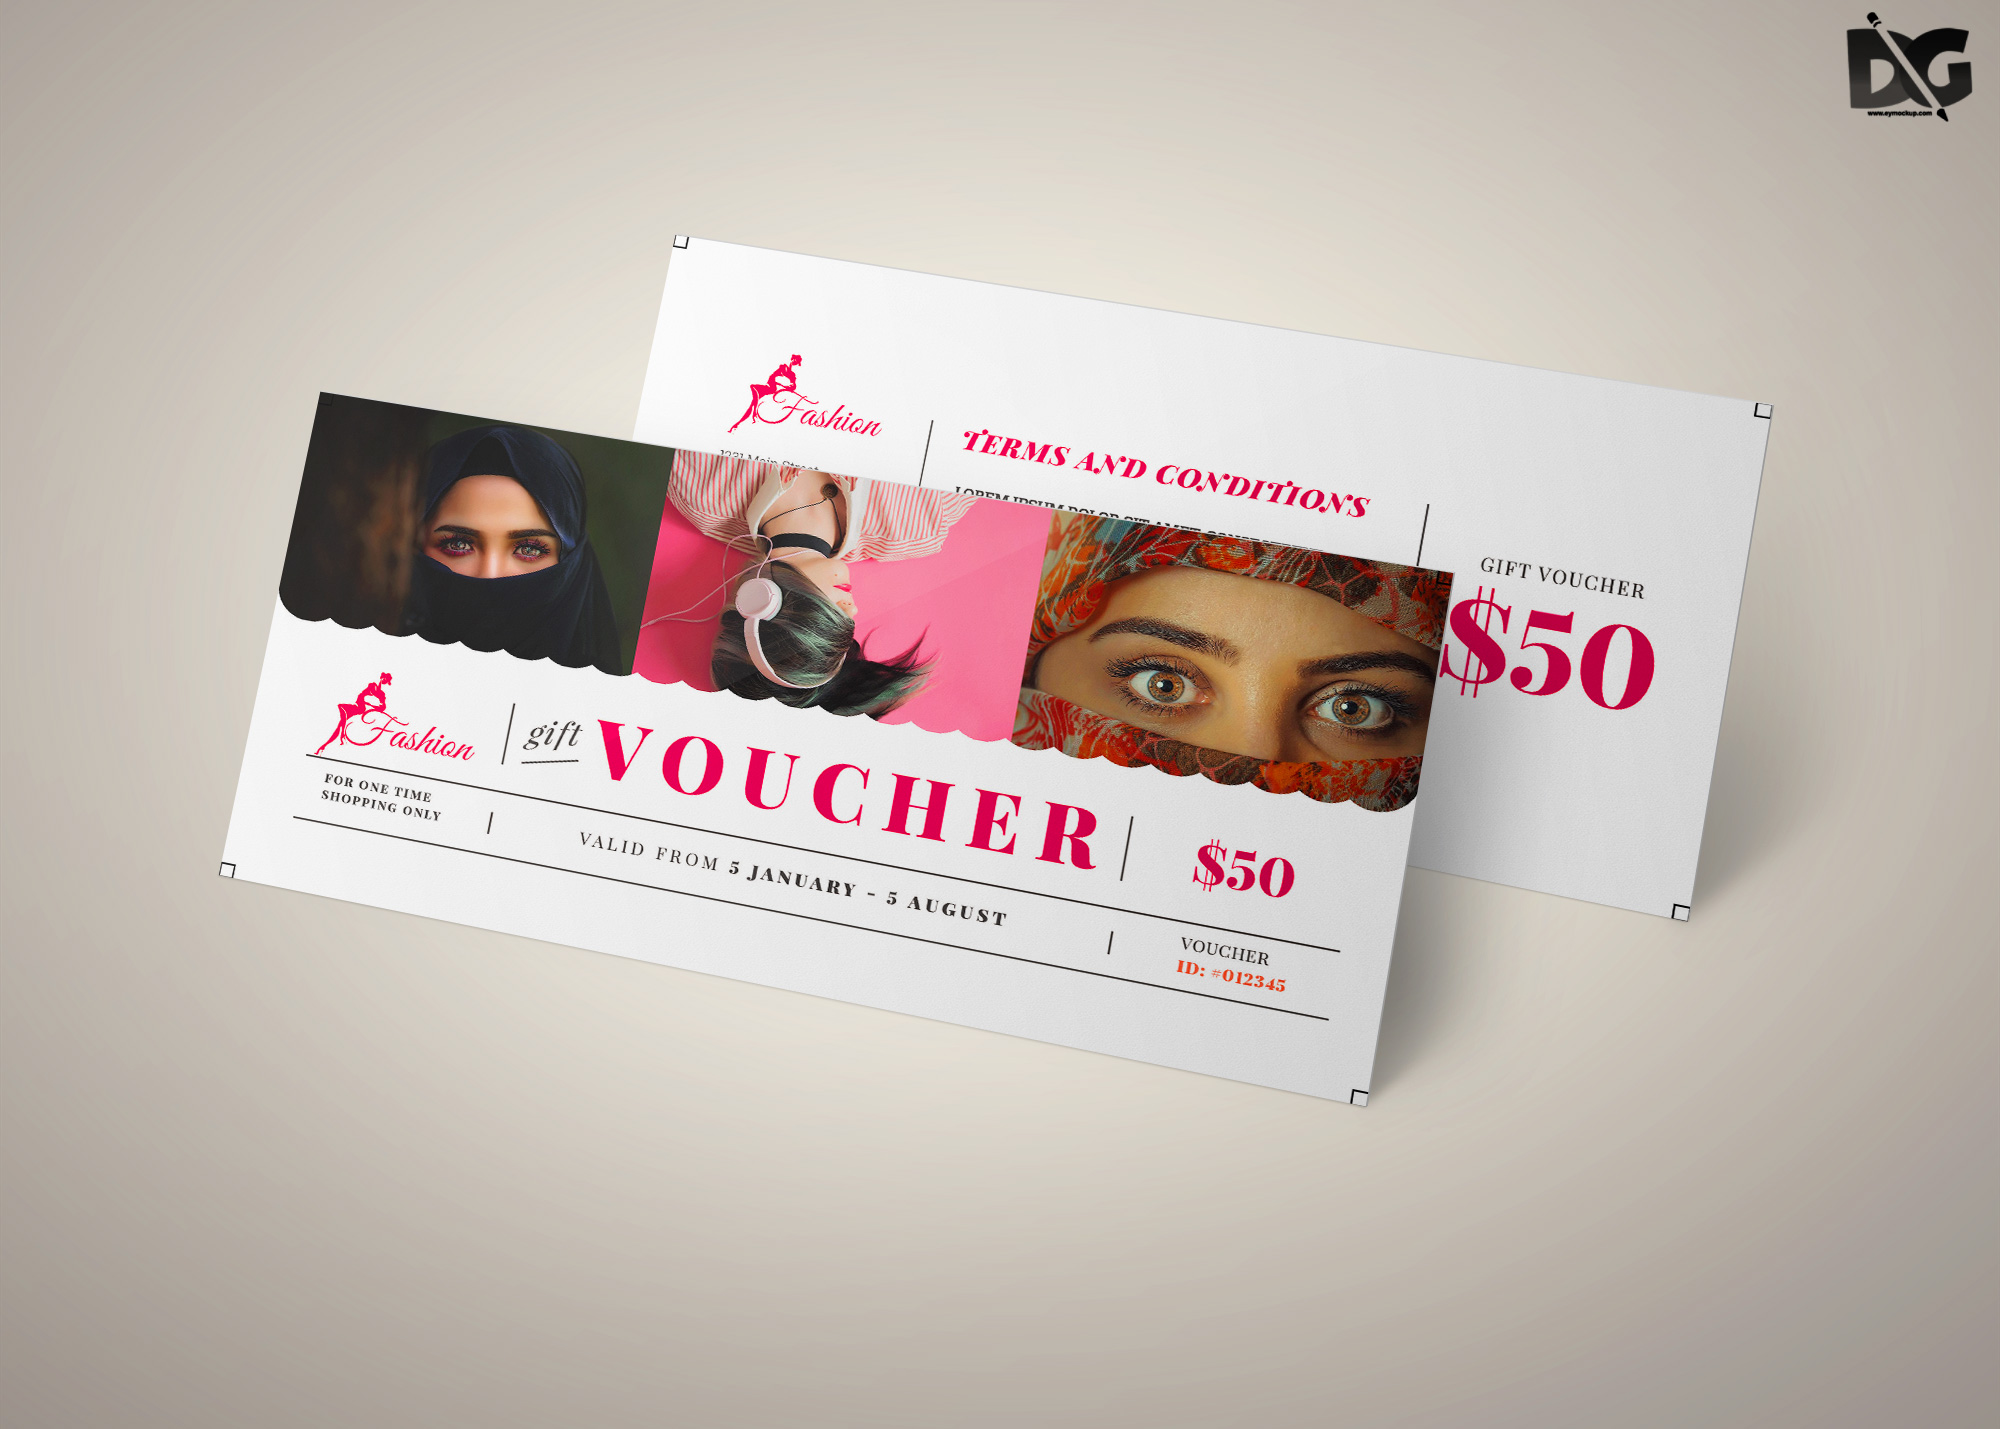 Free Download Fashion Shop Voucher Template